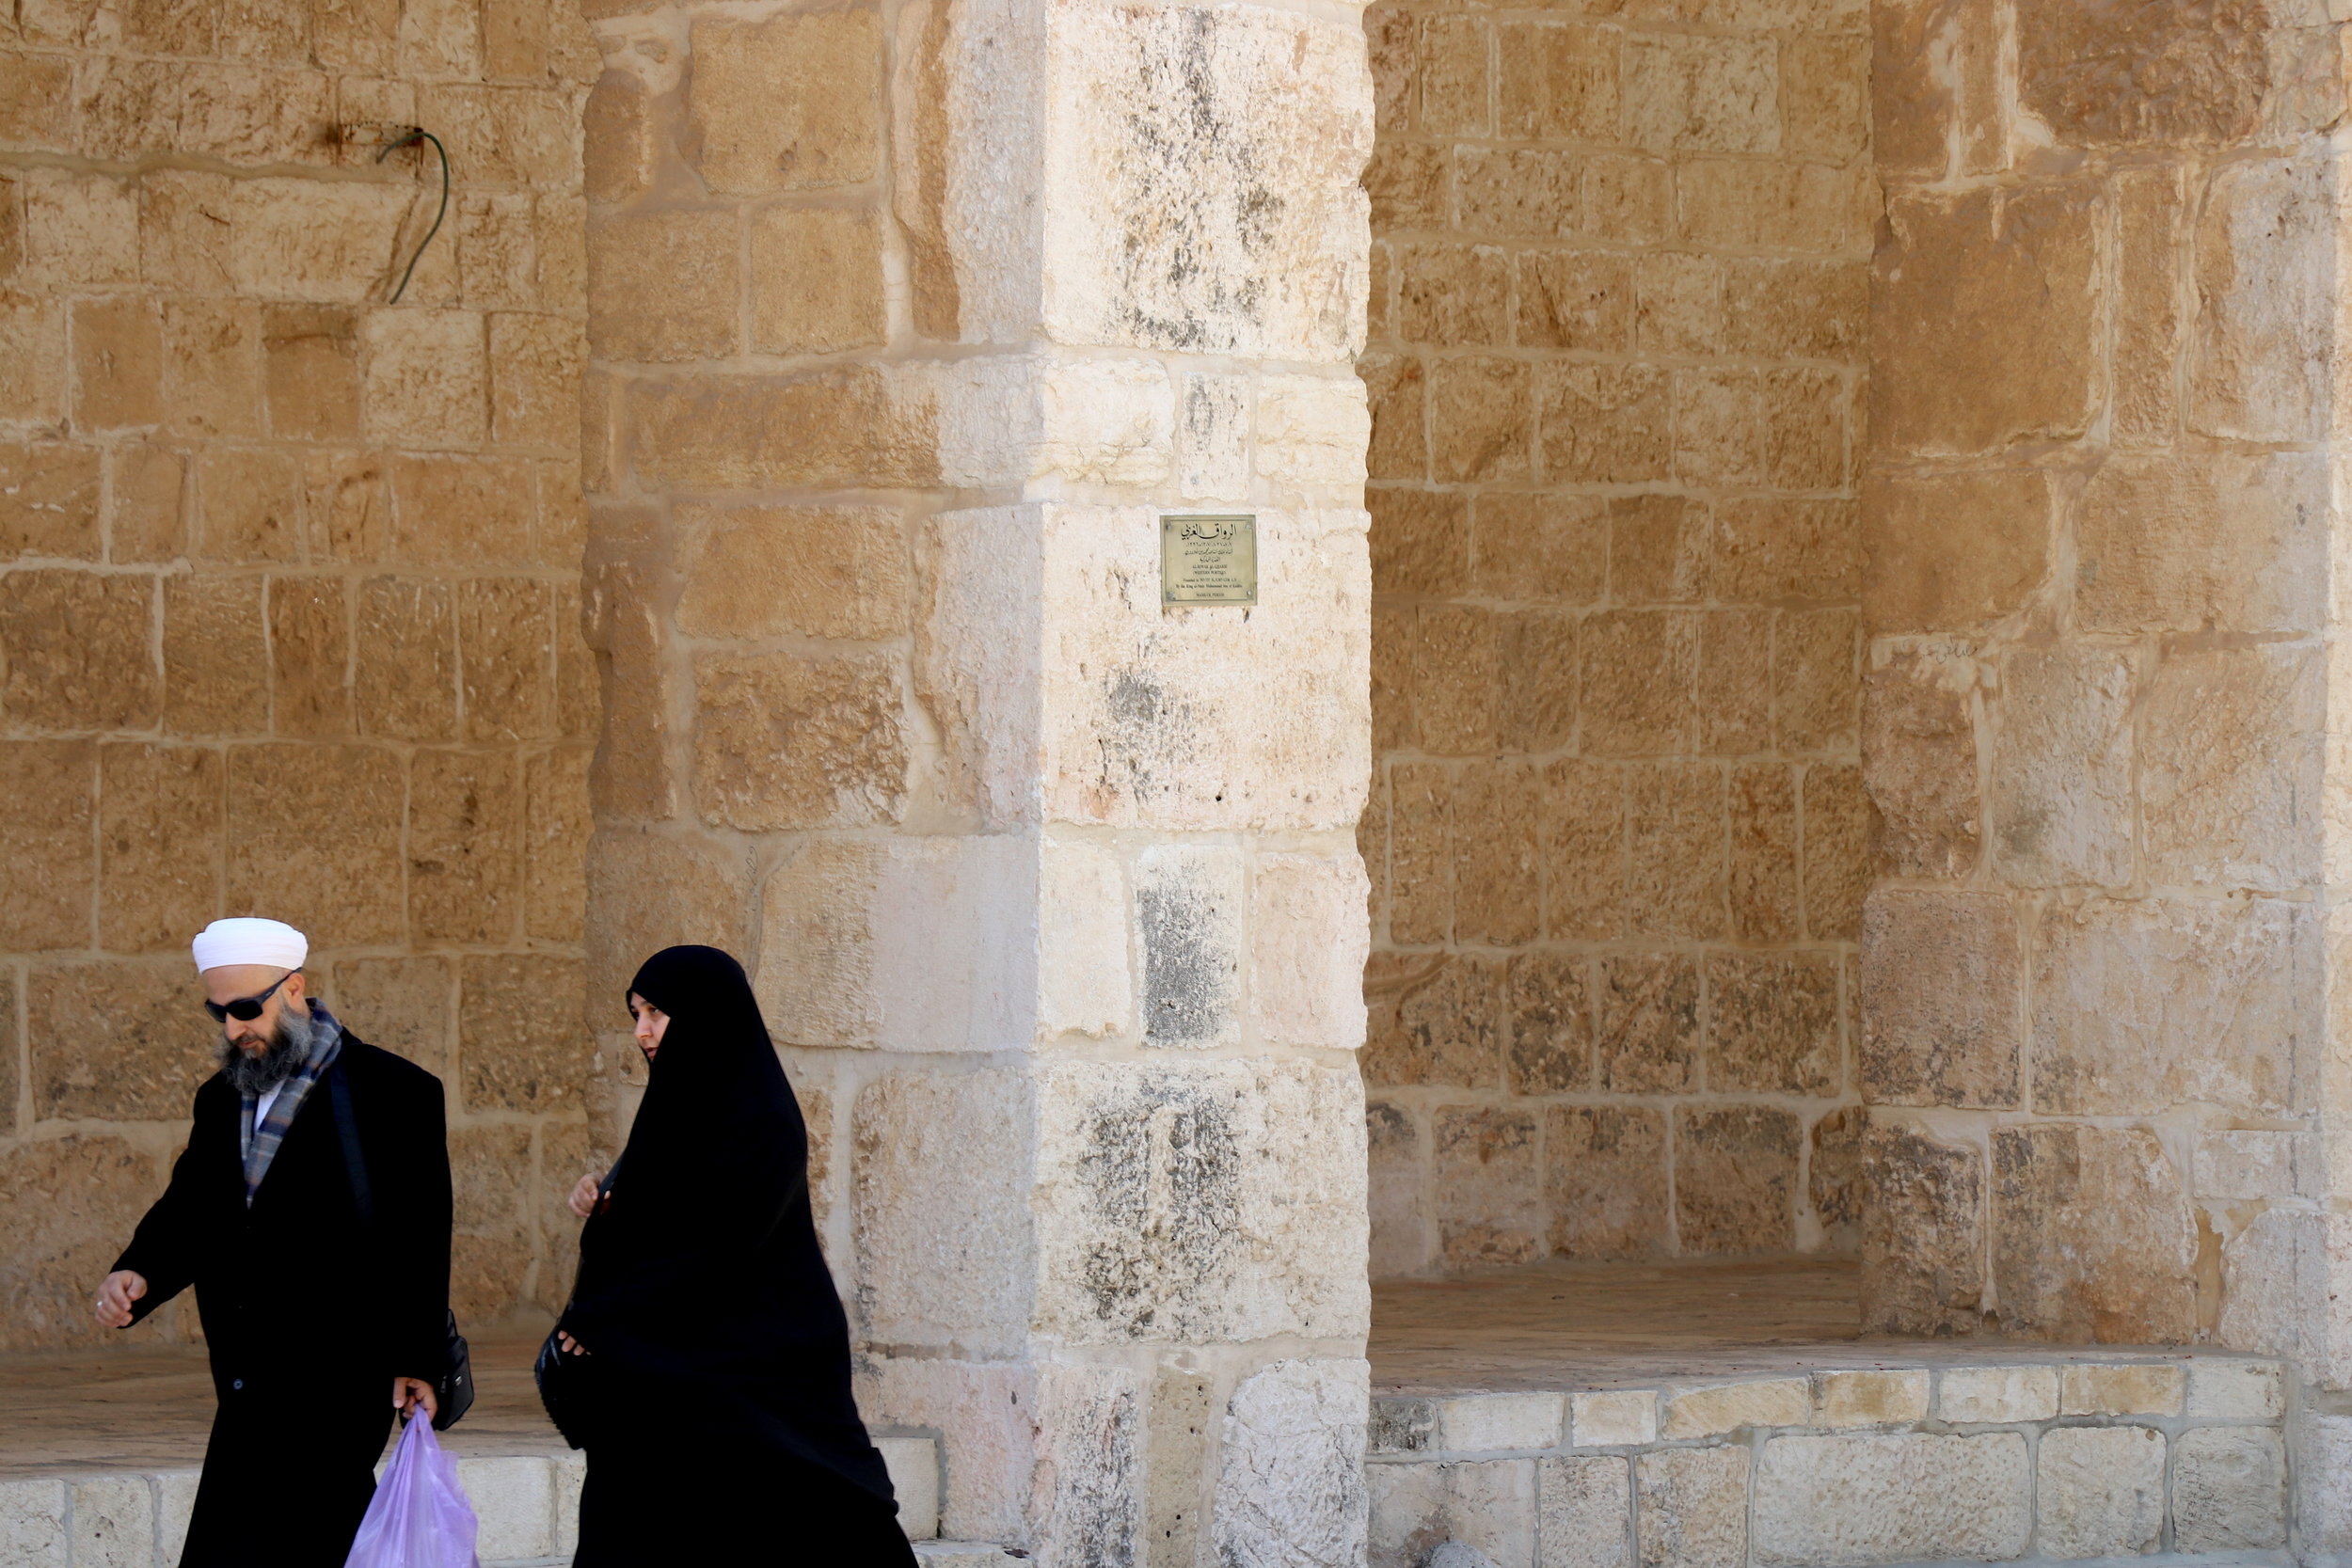 Women walk at the Dome of the Rock in the Old City of Jerusalem. The Islamic shrine is of great significance to Muslims, who believe that Prophet Muhammad's ascendance to heaven started from the rock at the core of the structure. Photo by    Saniya More